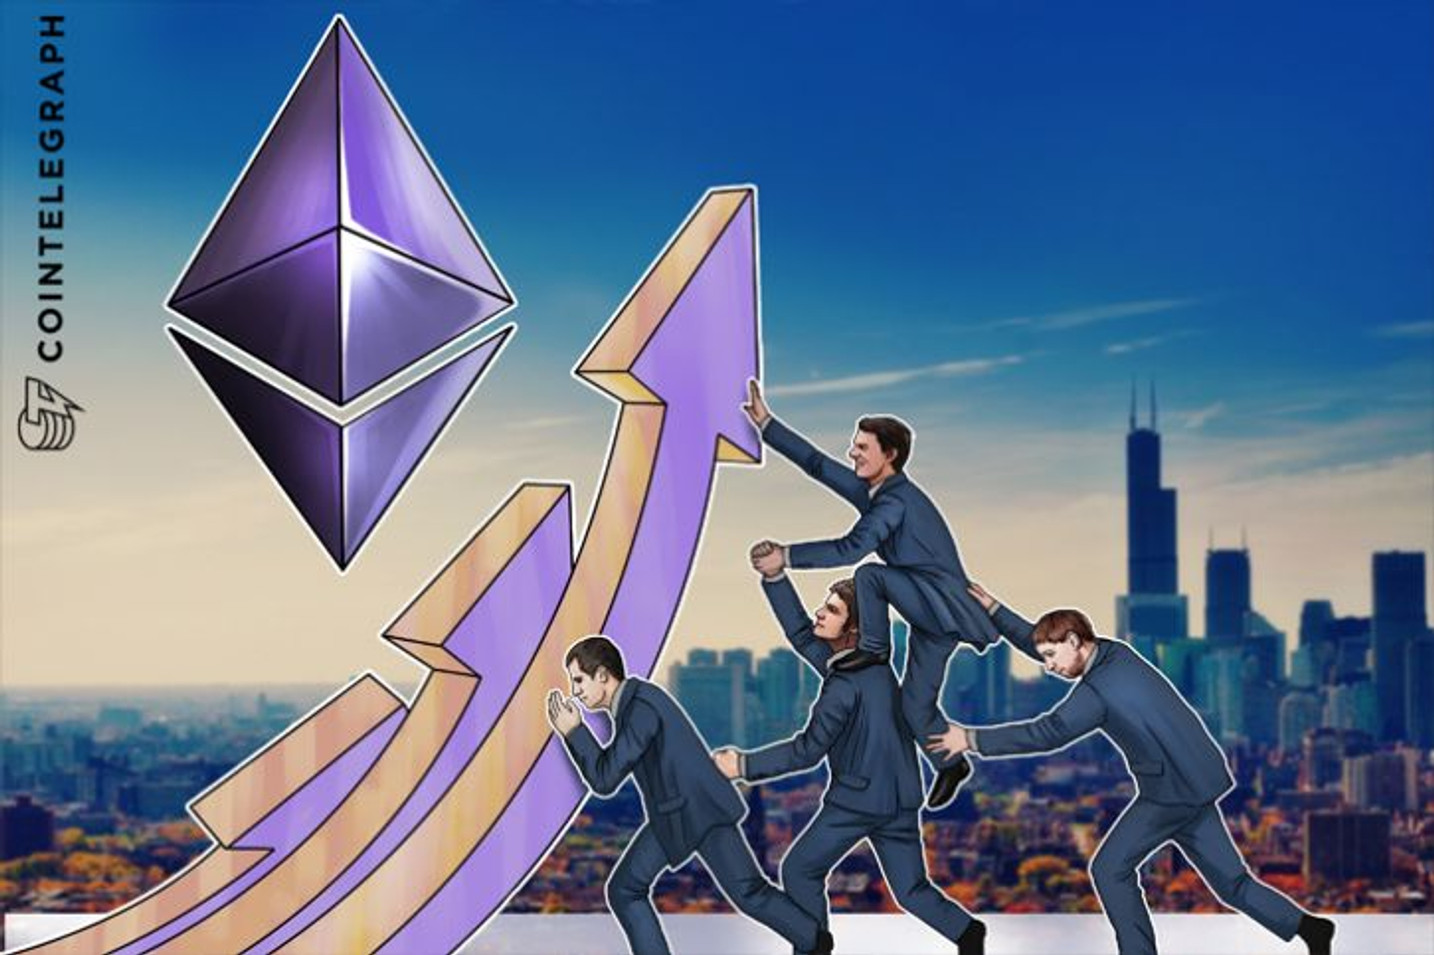 Ethereum Hottest New Platform and Bitcoin's Top Rival: Bloomberg